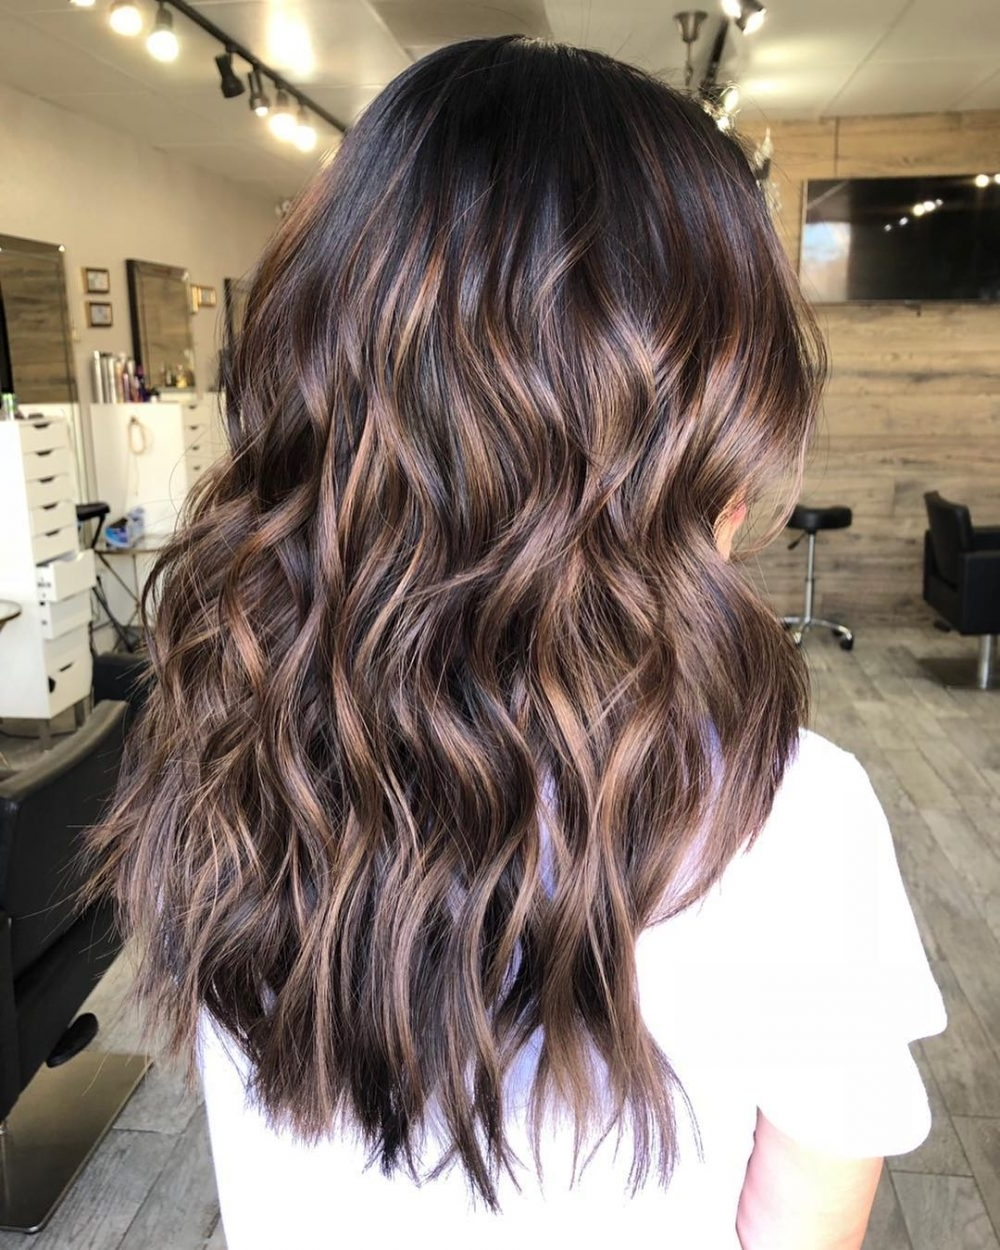 26 Lowlights In 2018 That Will Inspire Your Next Hair Color Pertaining To Fashionable Brown And Dark Blonde Layers Hairstyles (View 3 of 20)